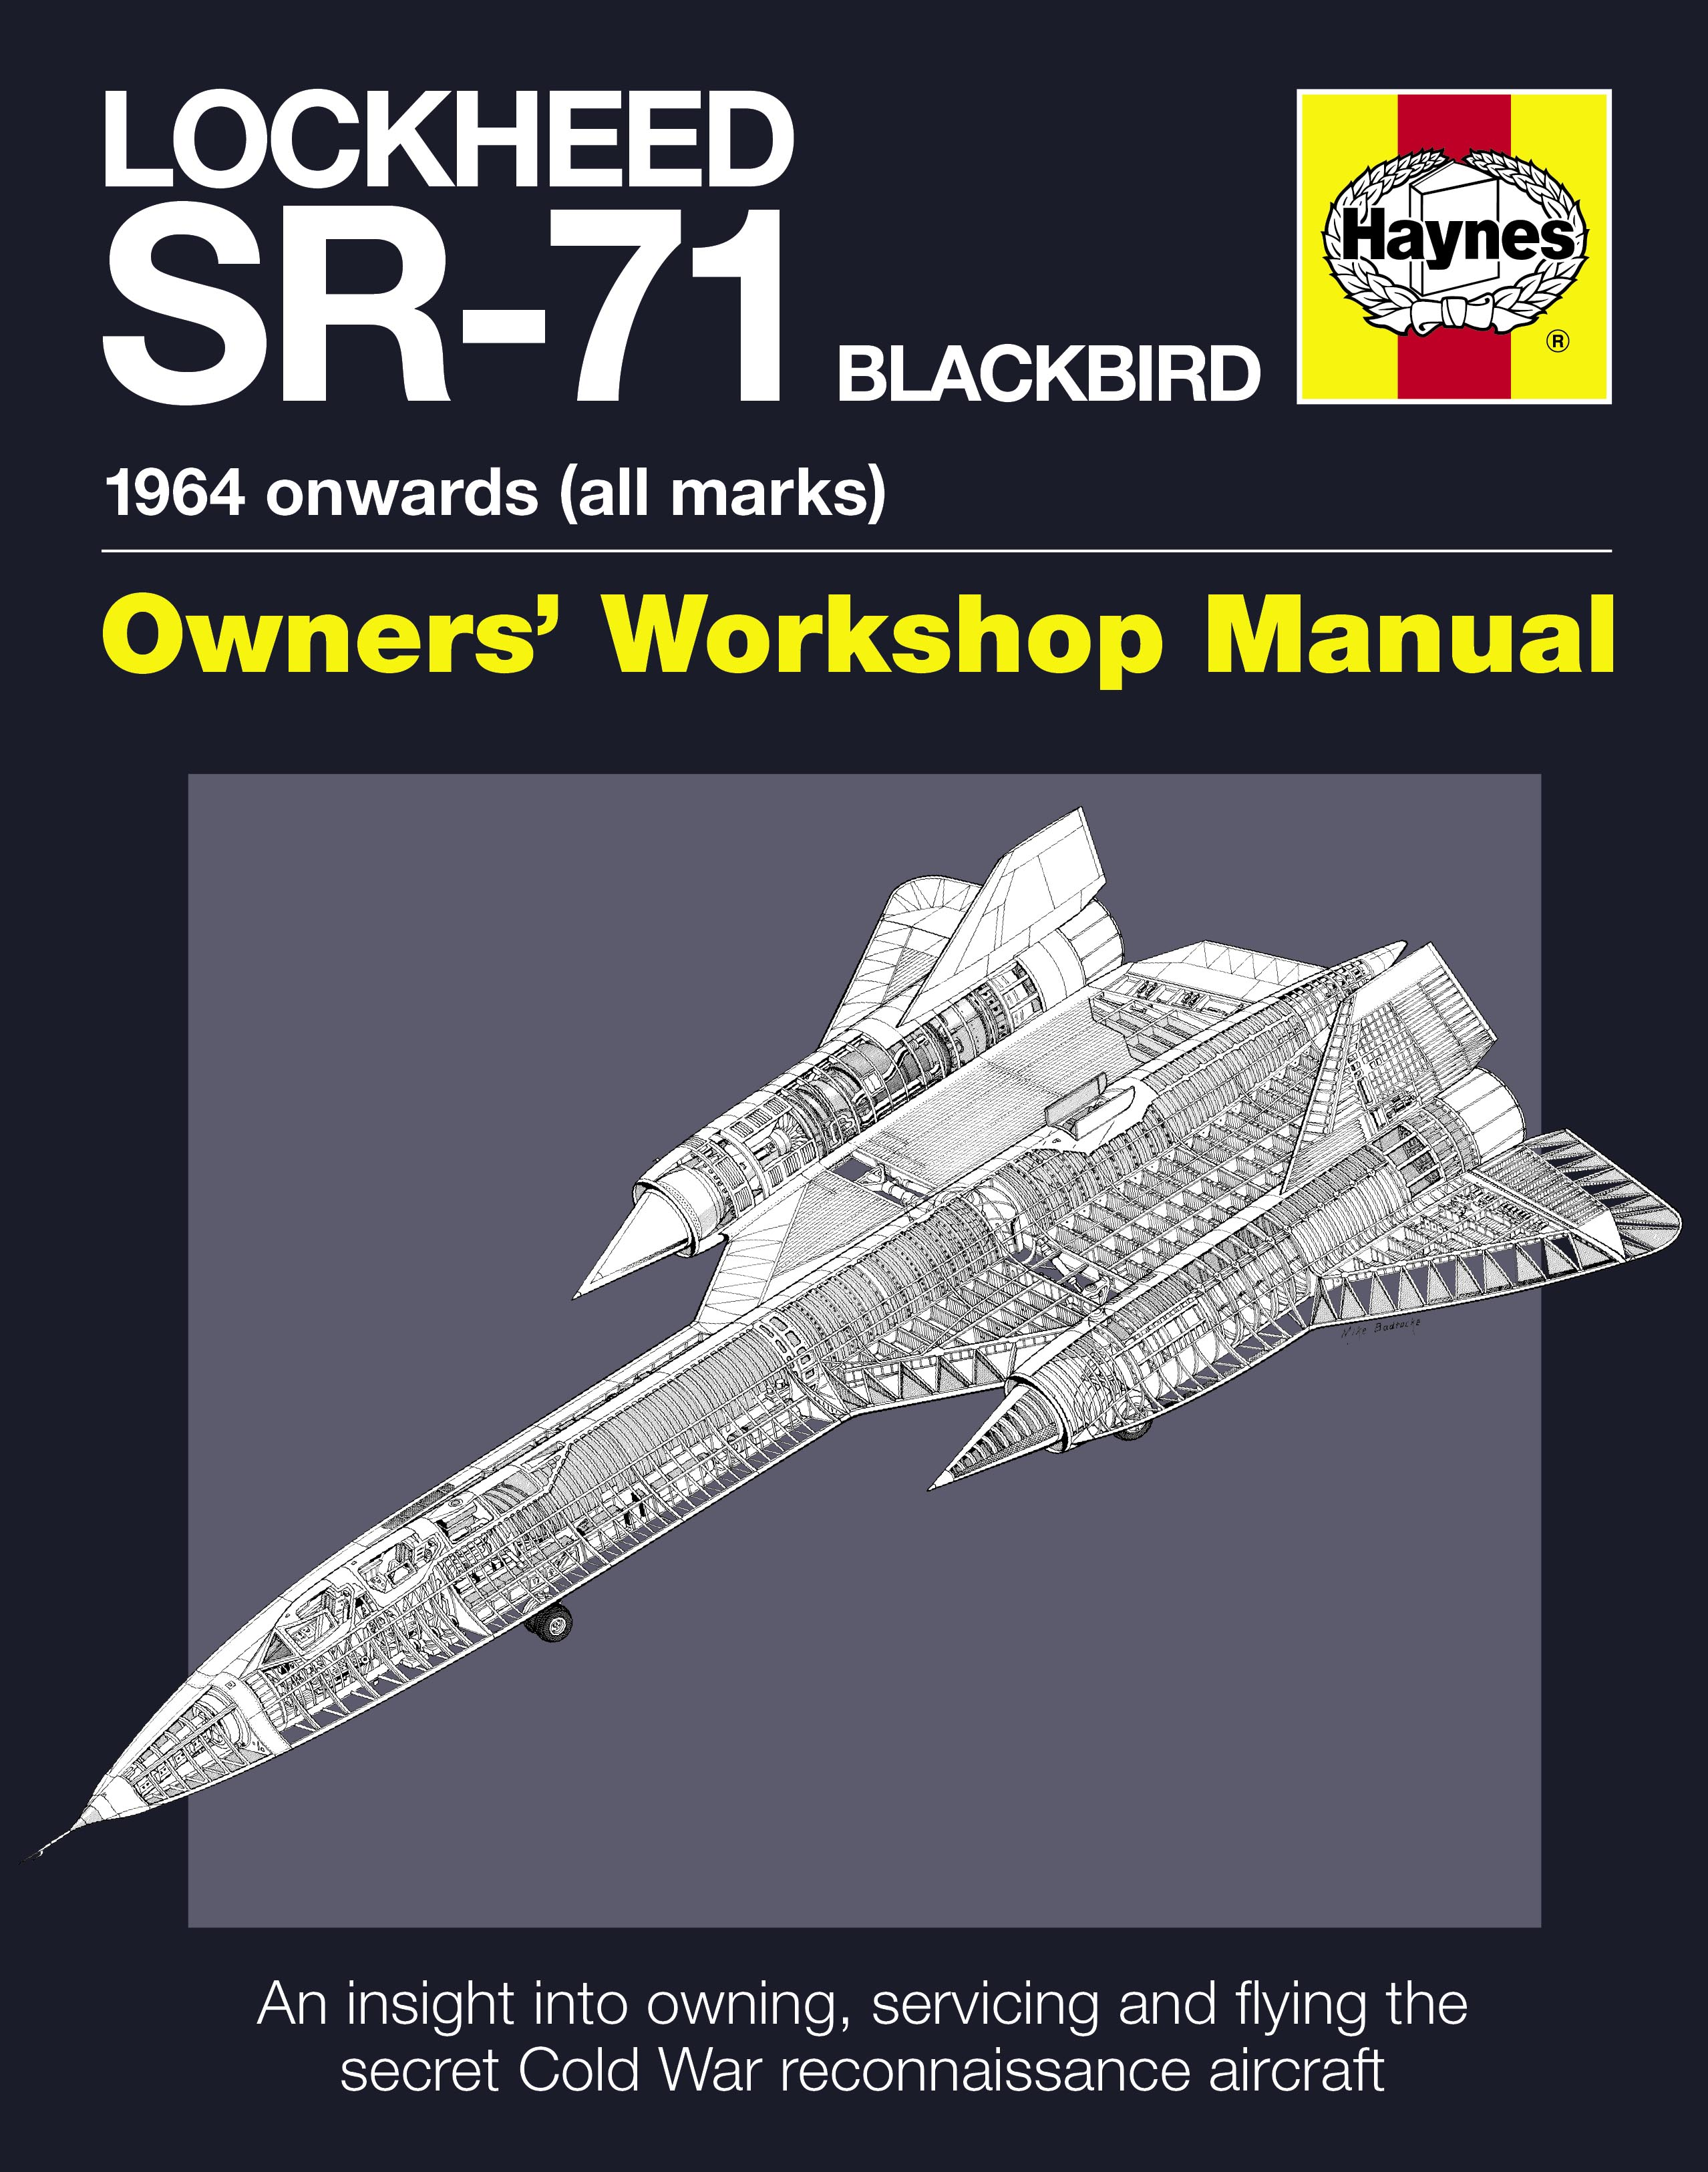 Lockheed SR-71 Blackbird Manual